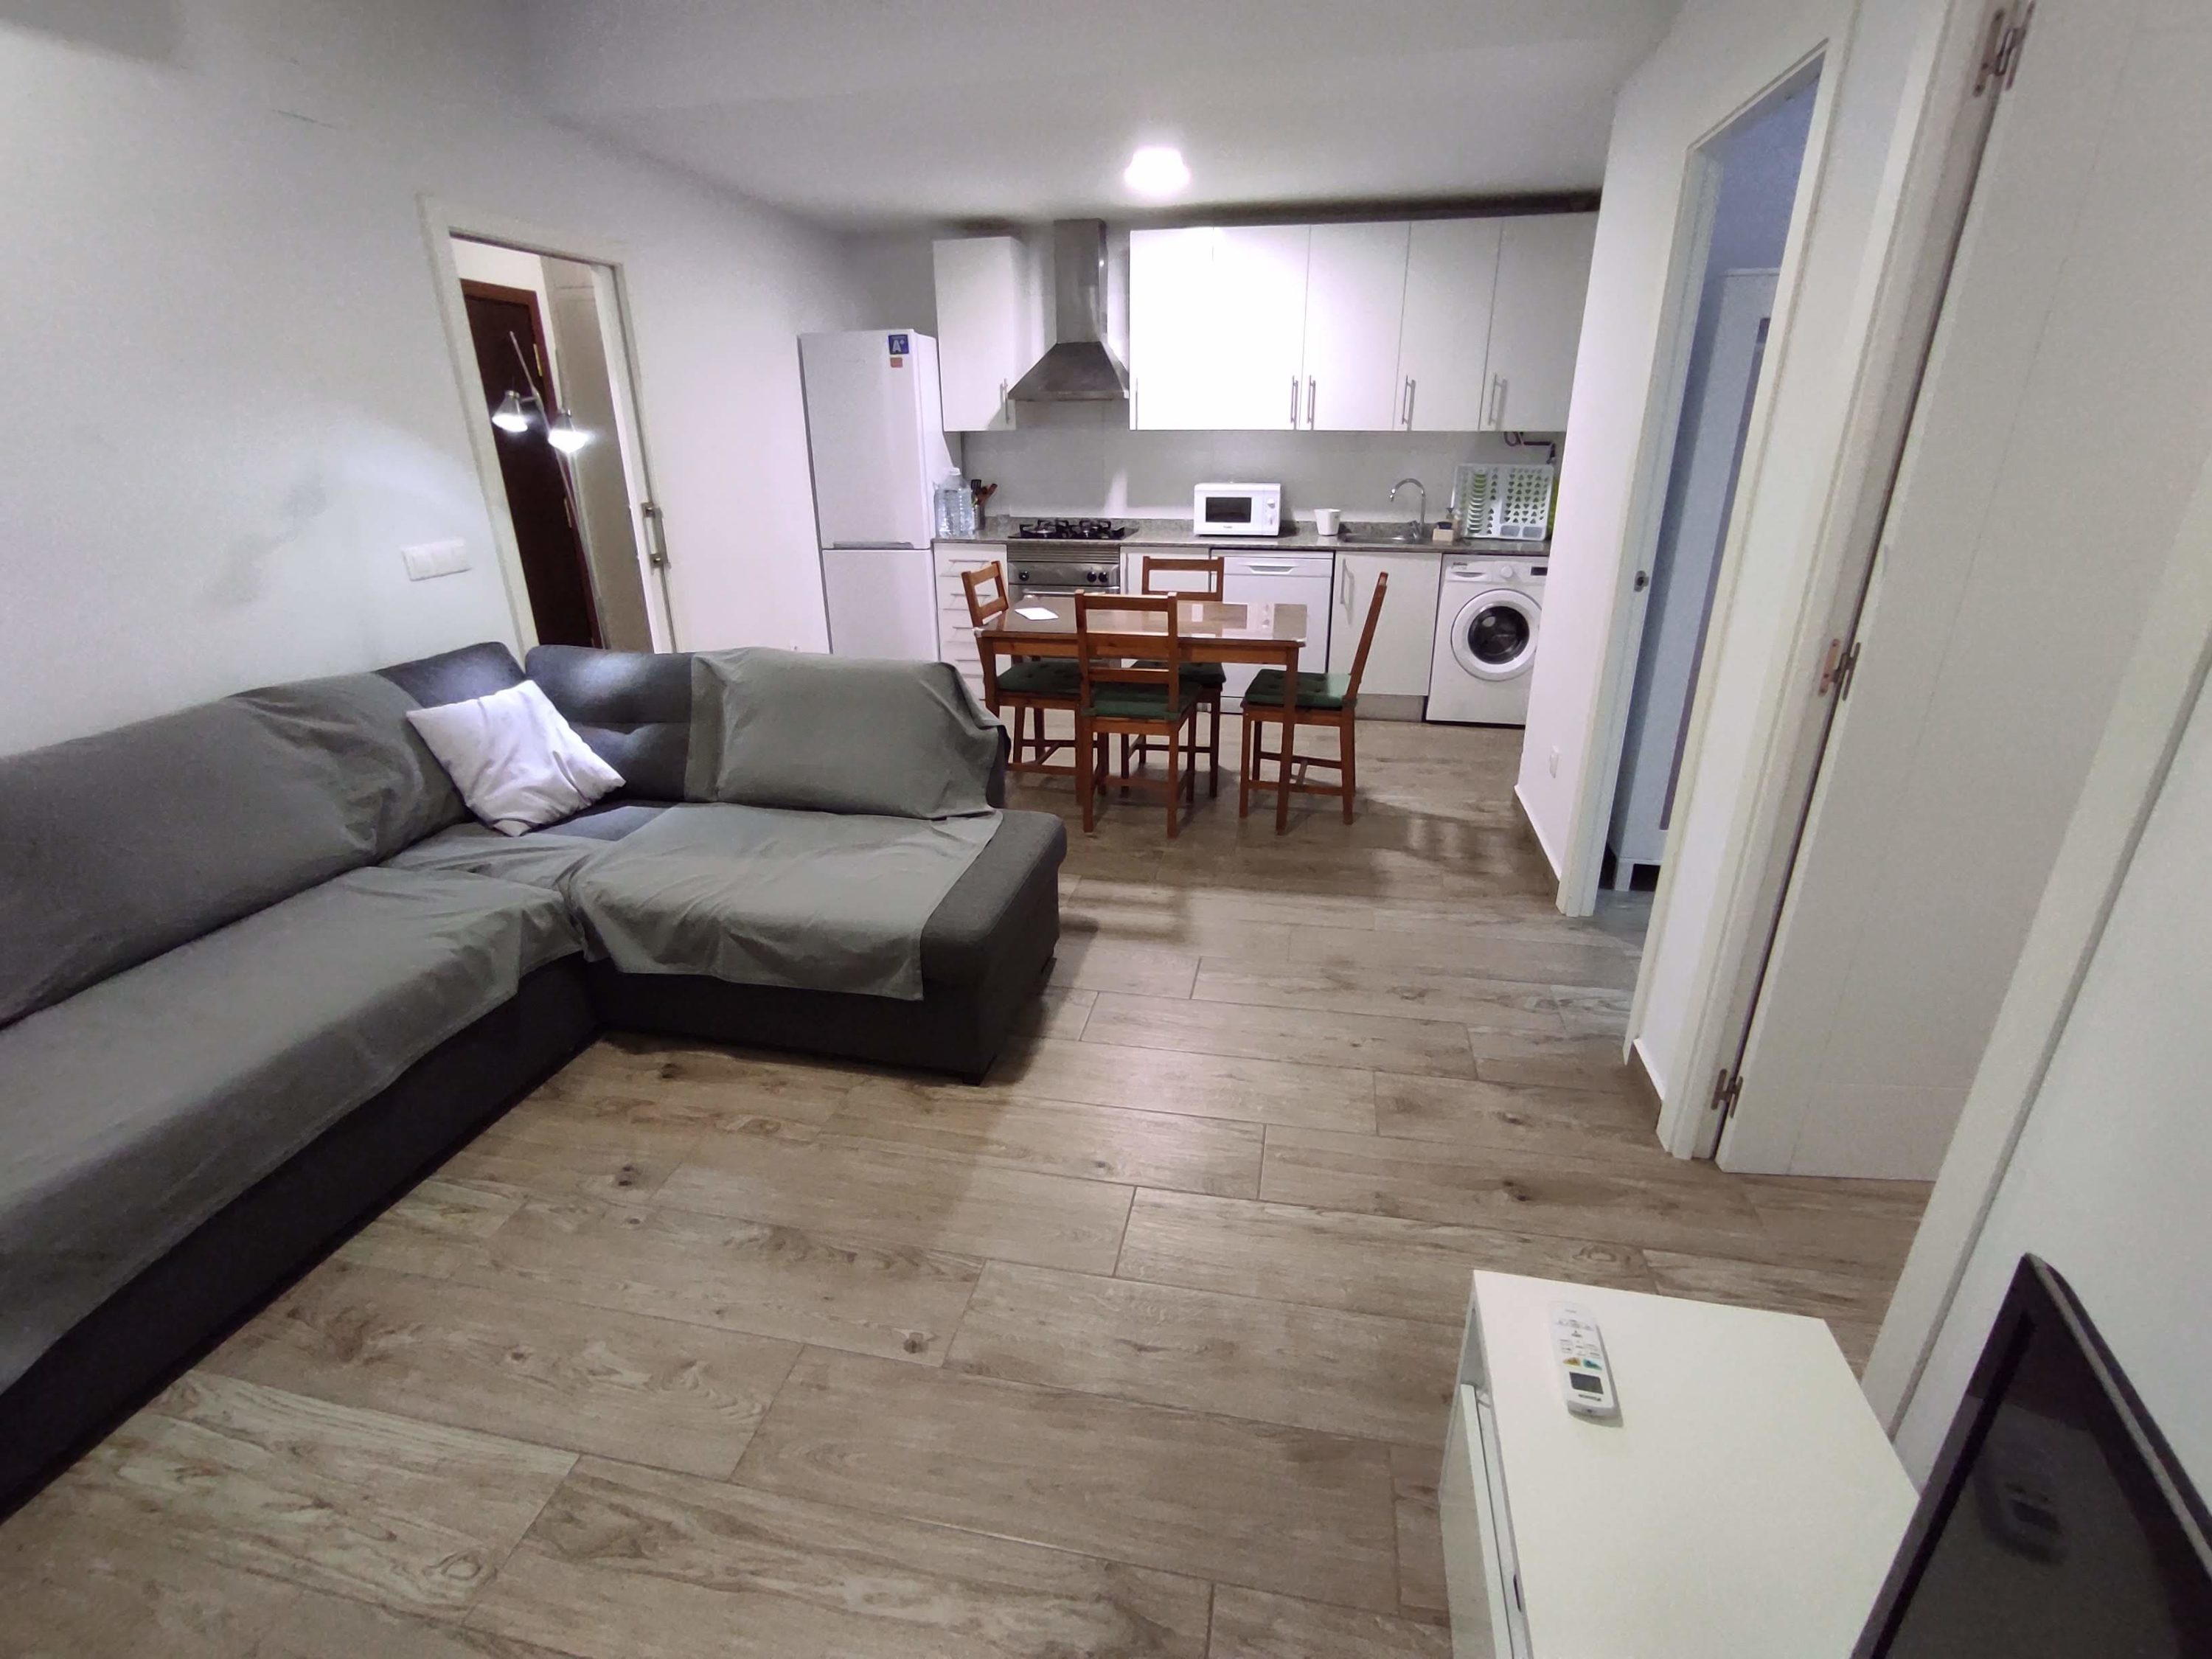 Flat for rent in Beteró – Ref. 001067